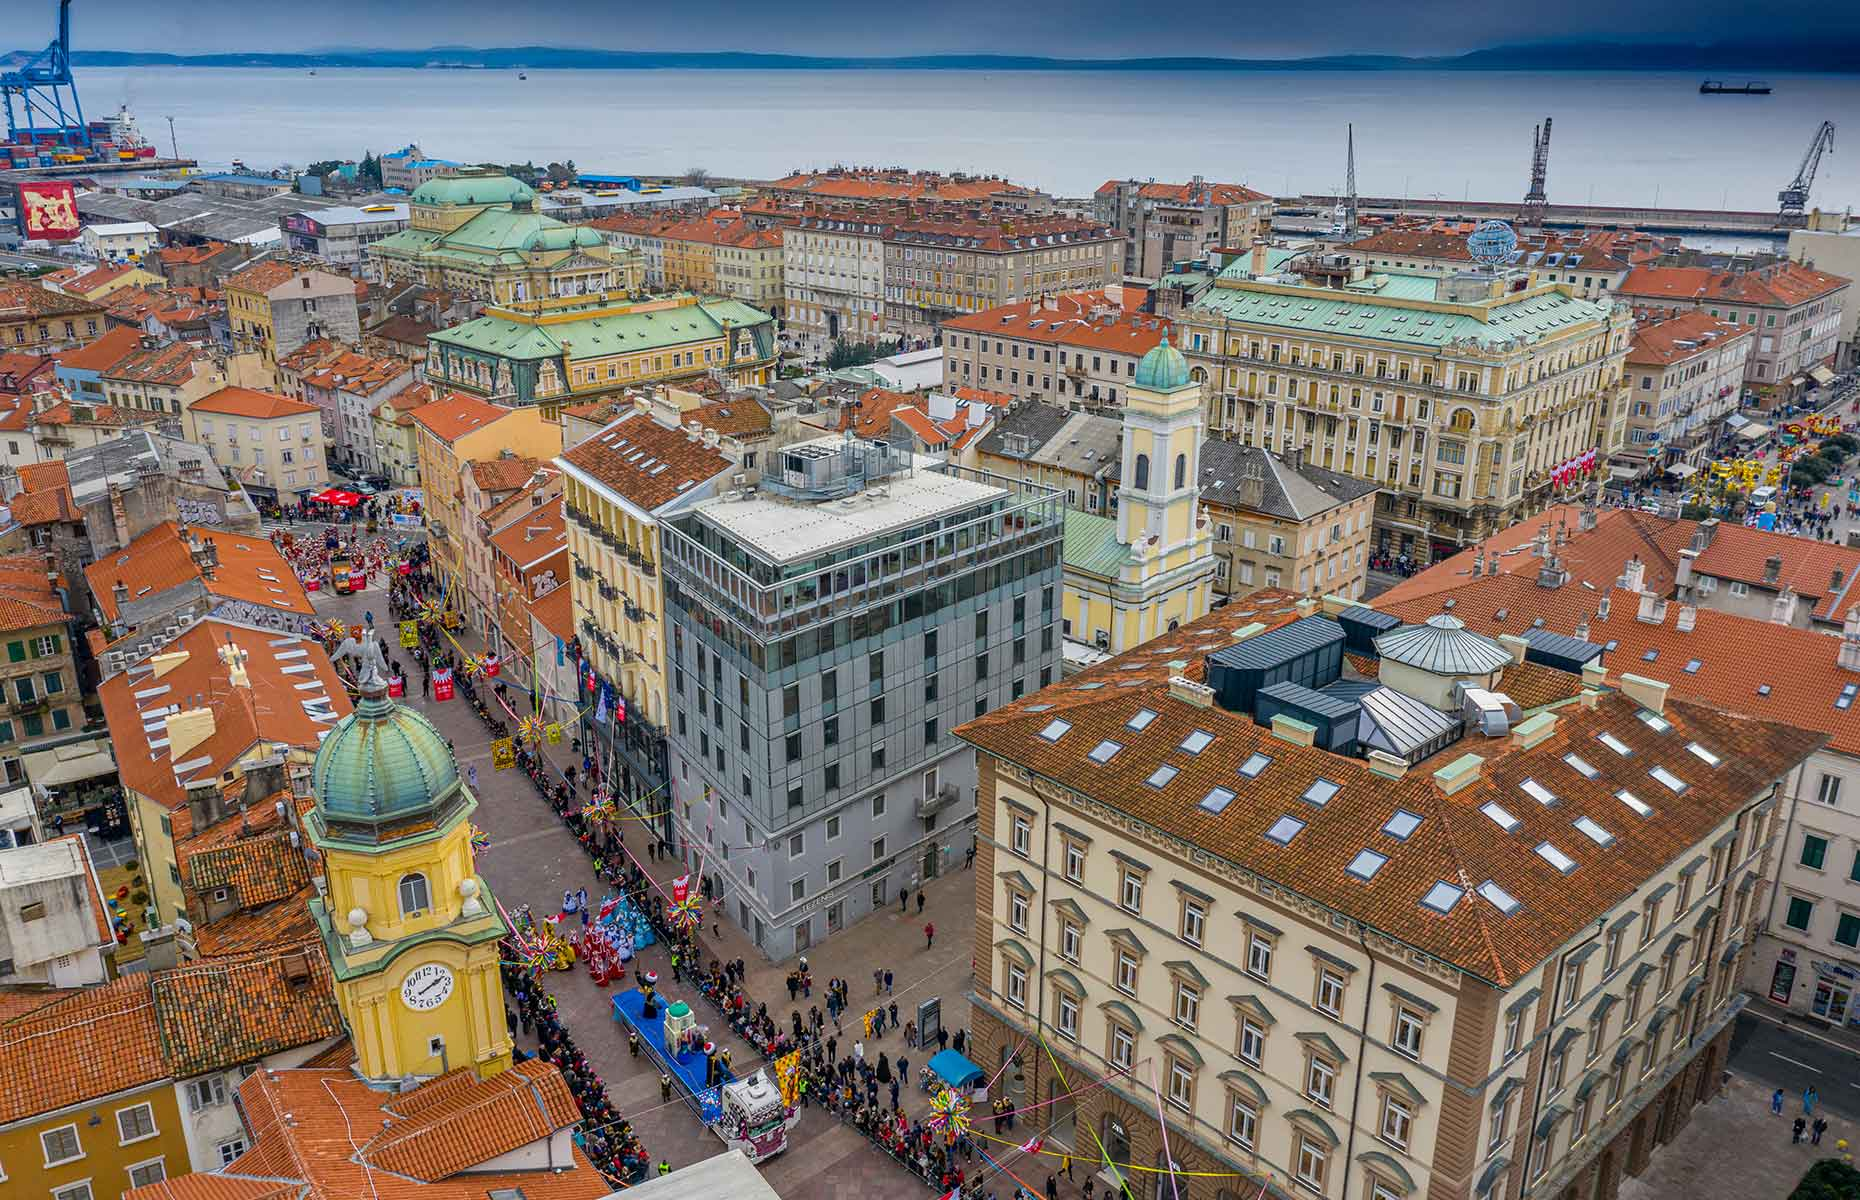 Rijeka, Croatia, viewed from above during a carnival (Image: Stefan Brajkovic/Shutterstock)